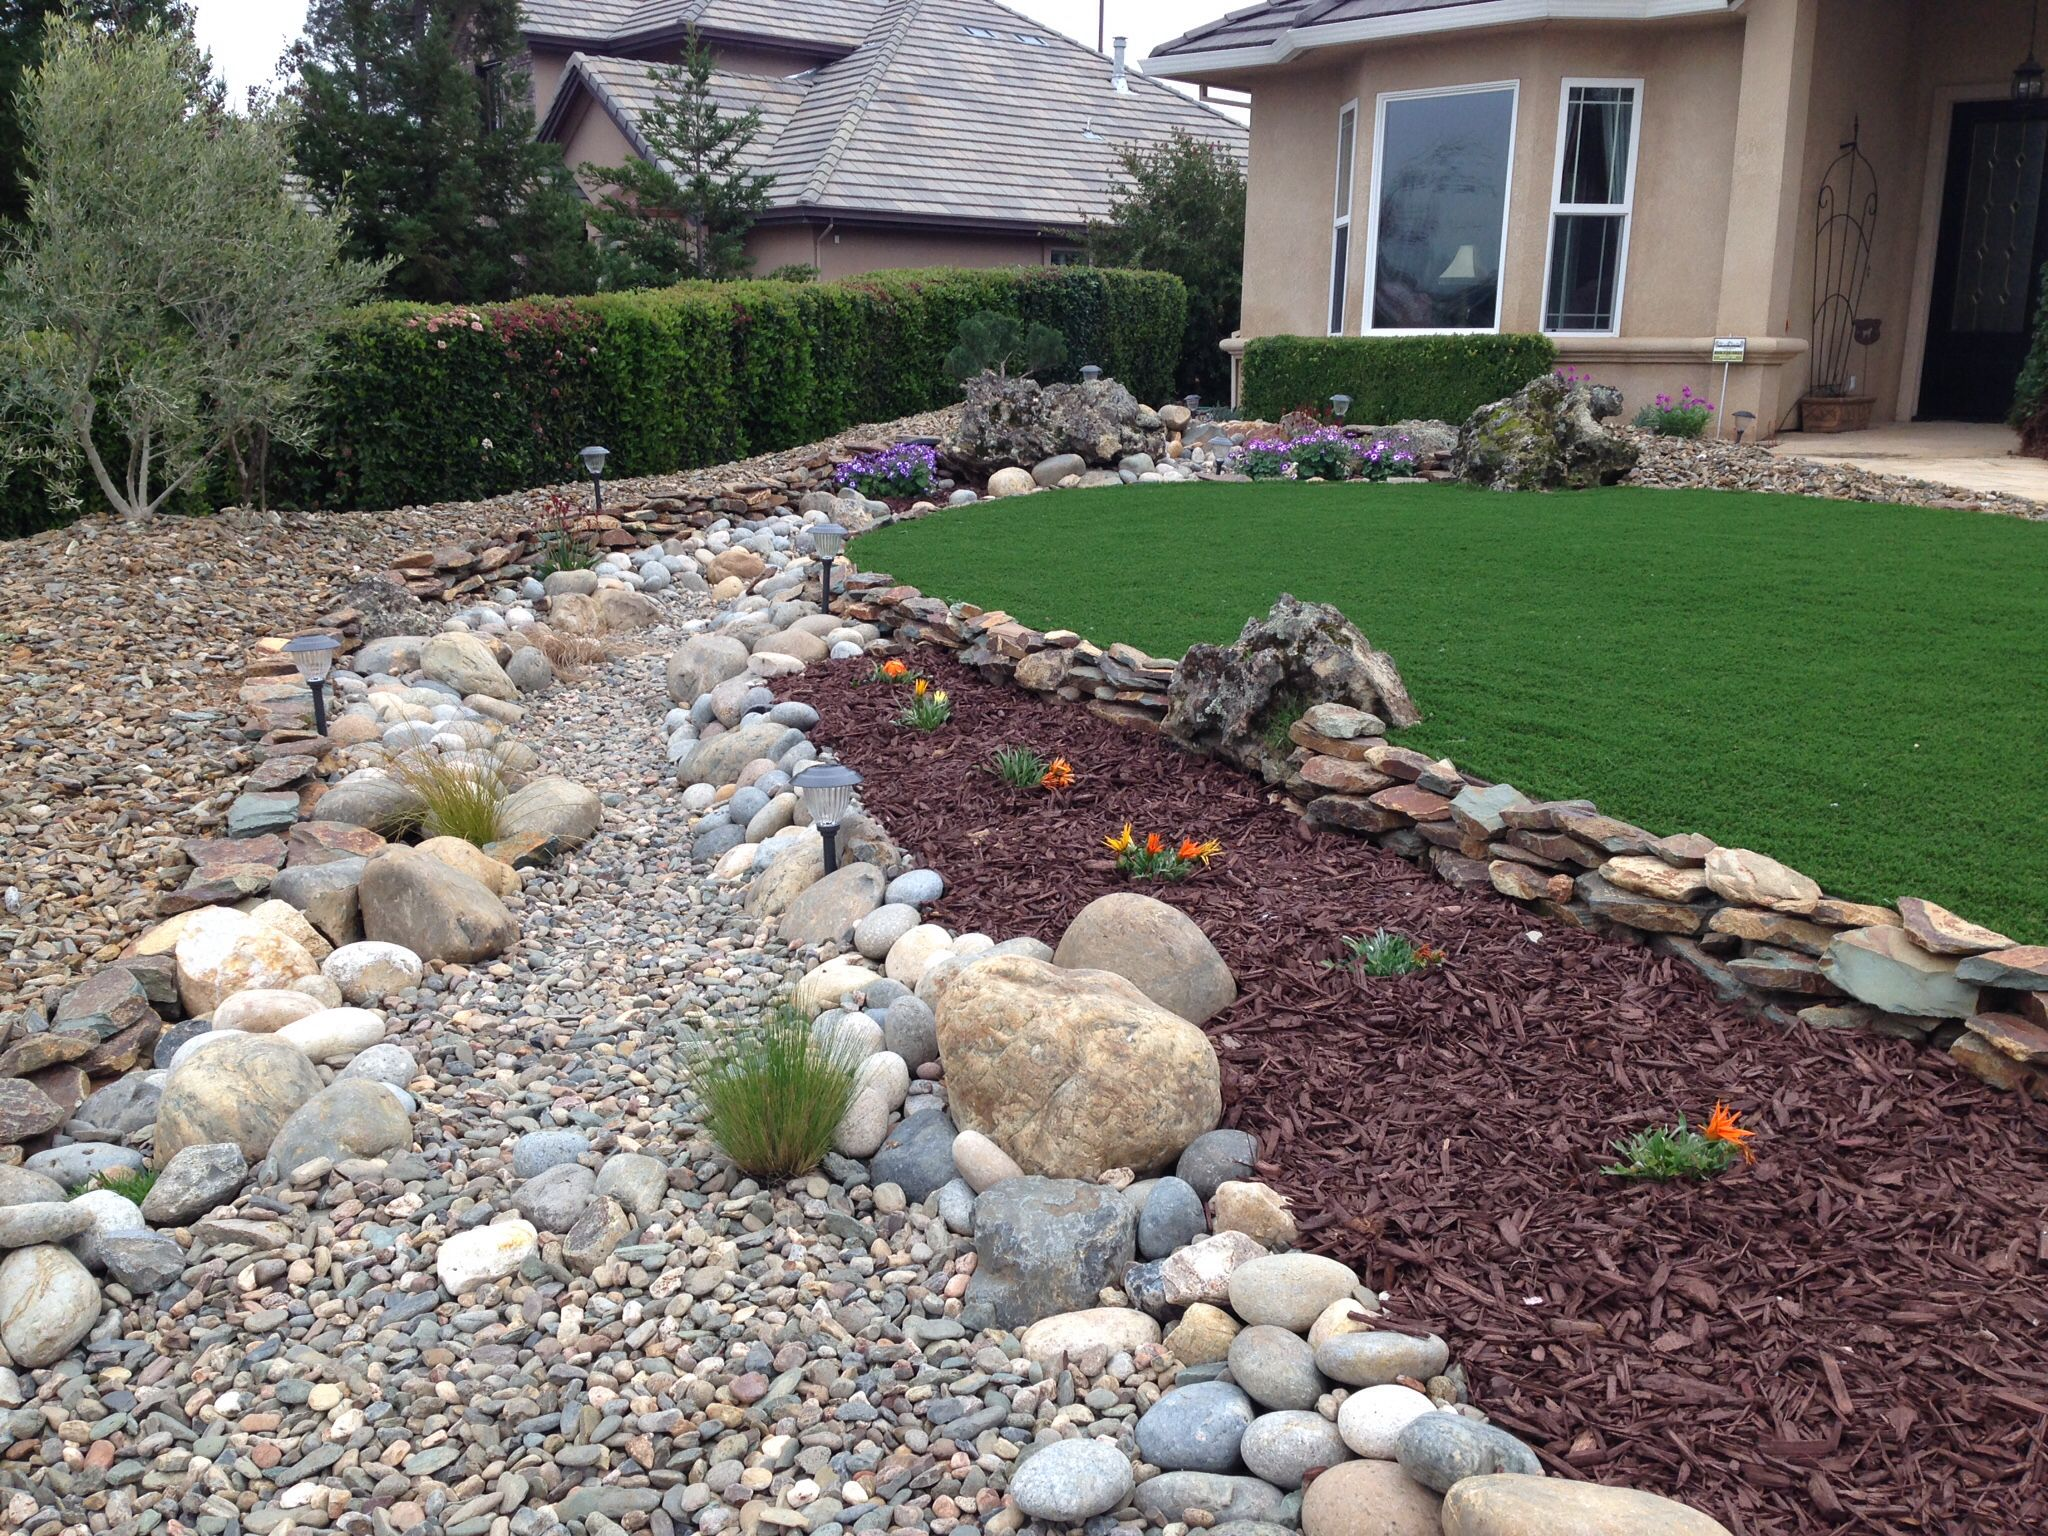 Drought tolerant landscape. Dry creek bed, artificial turf